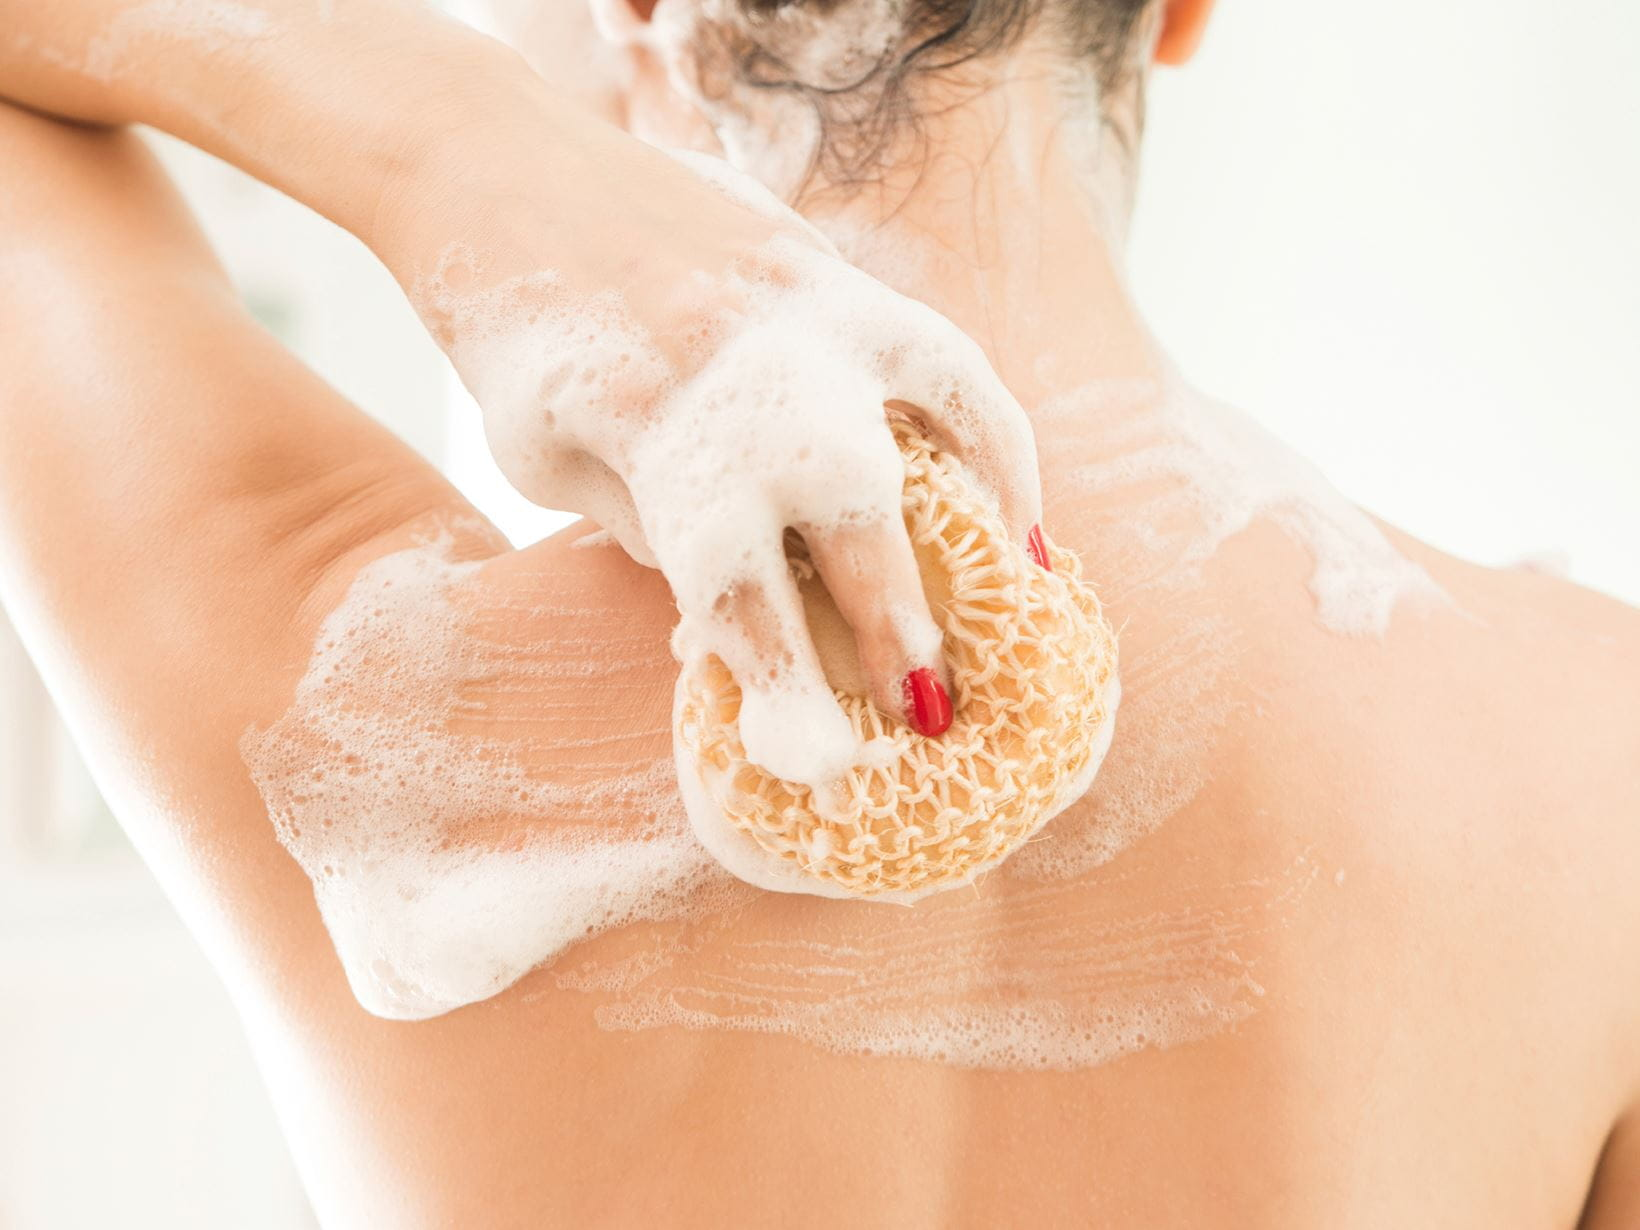 woman showing how to wash your body